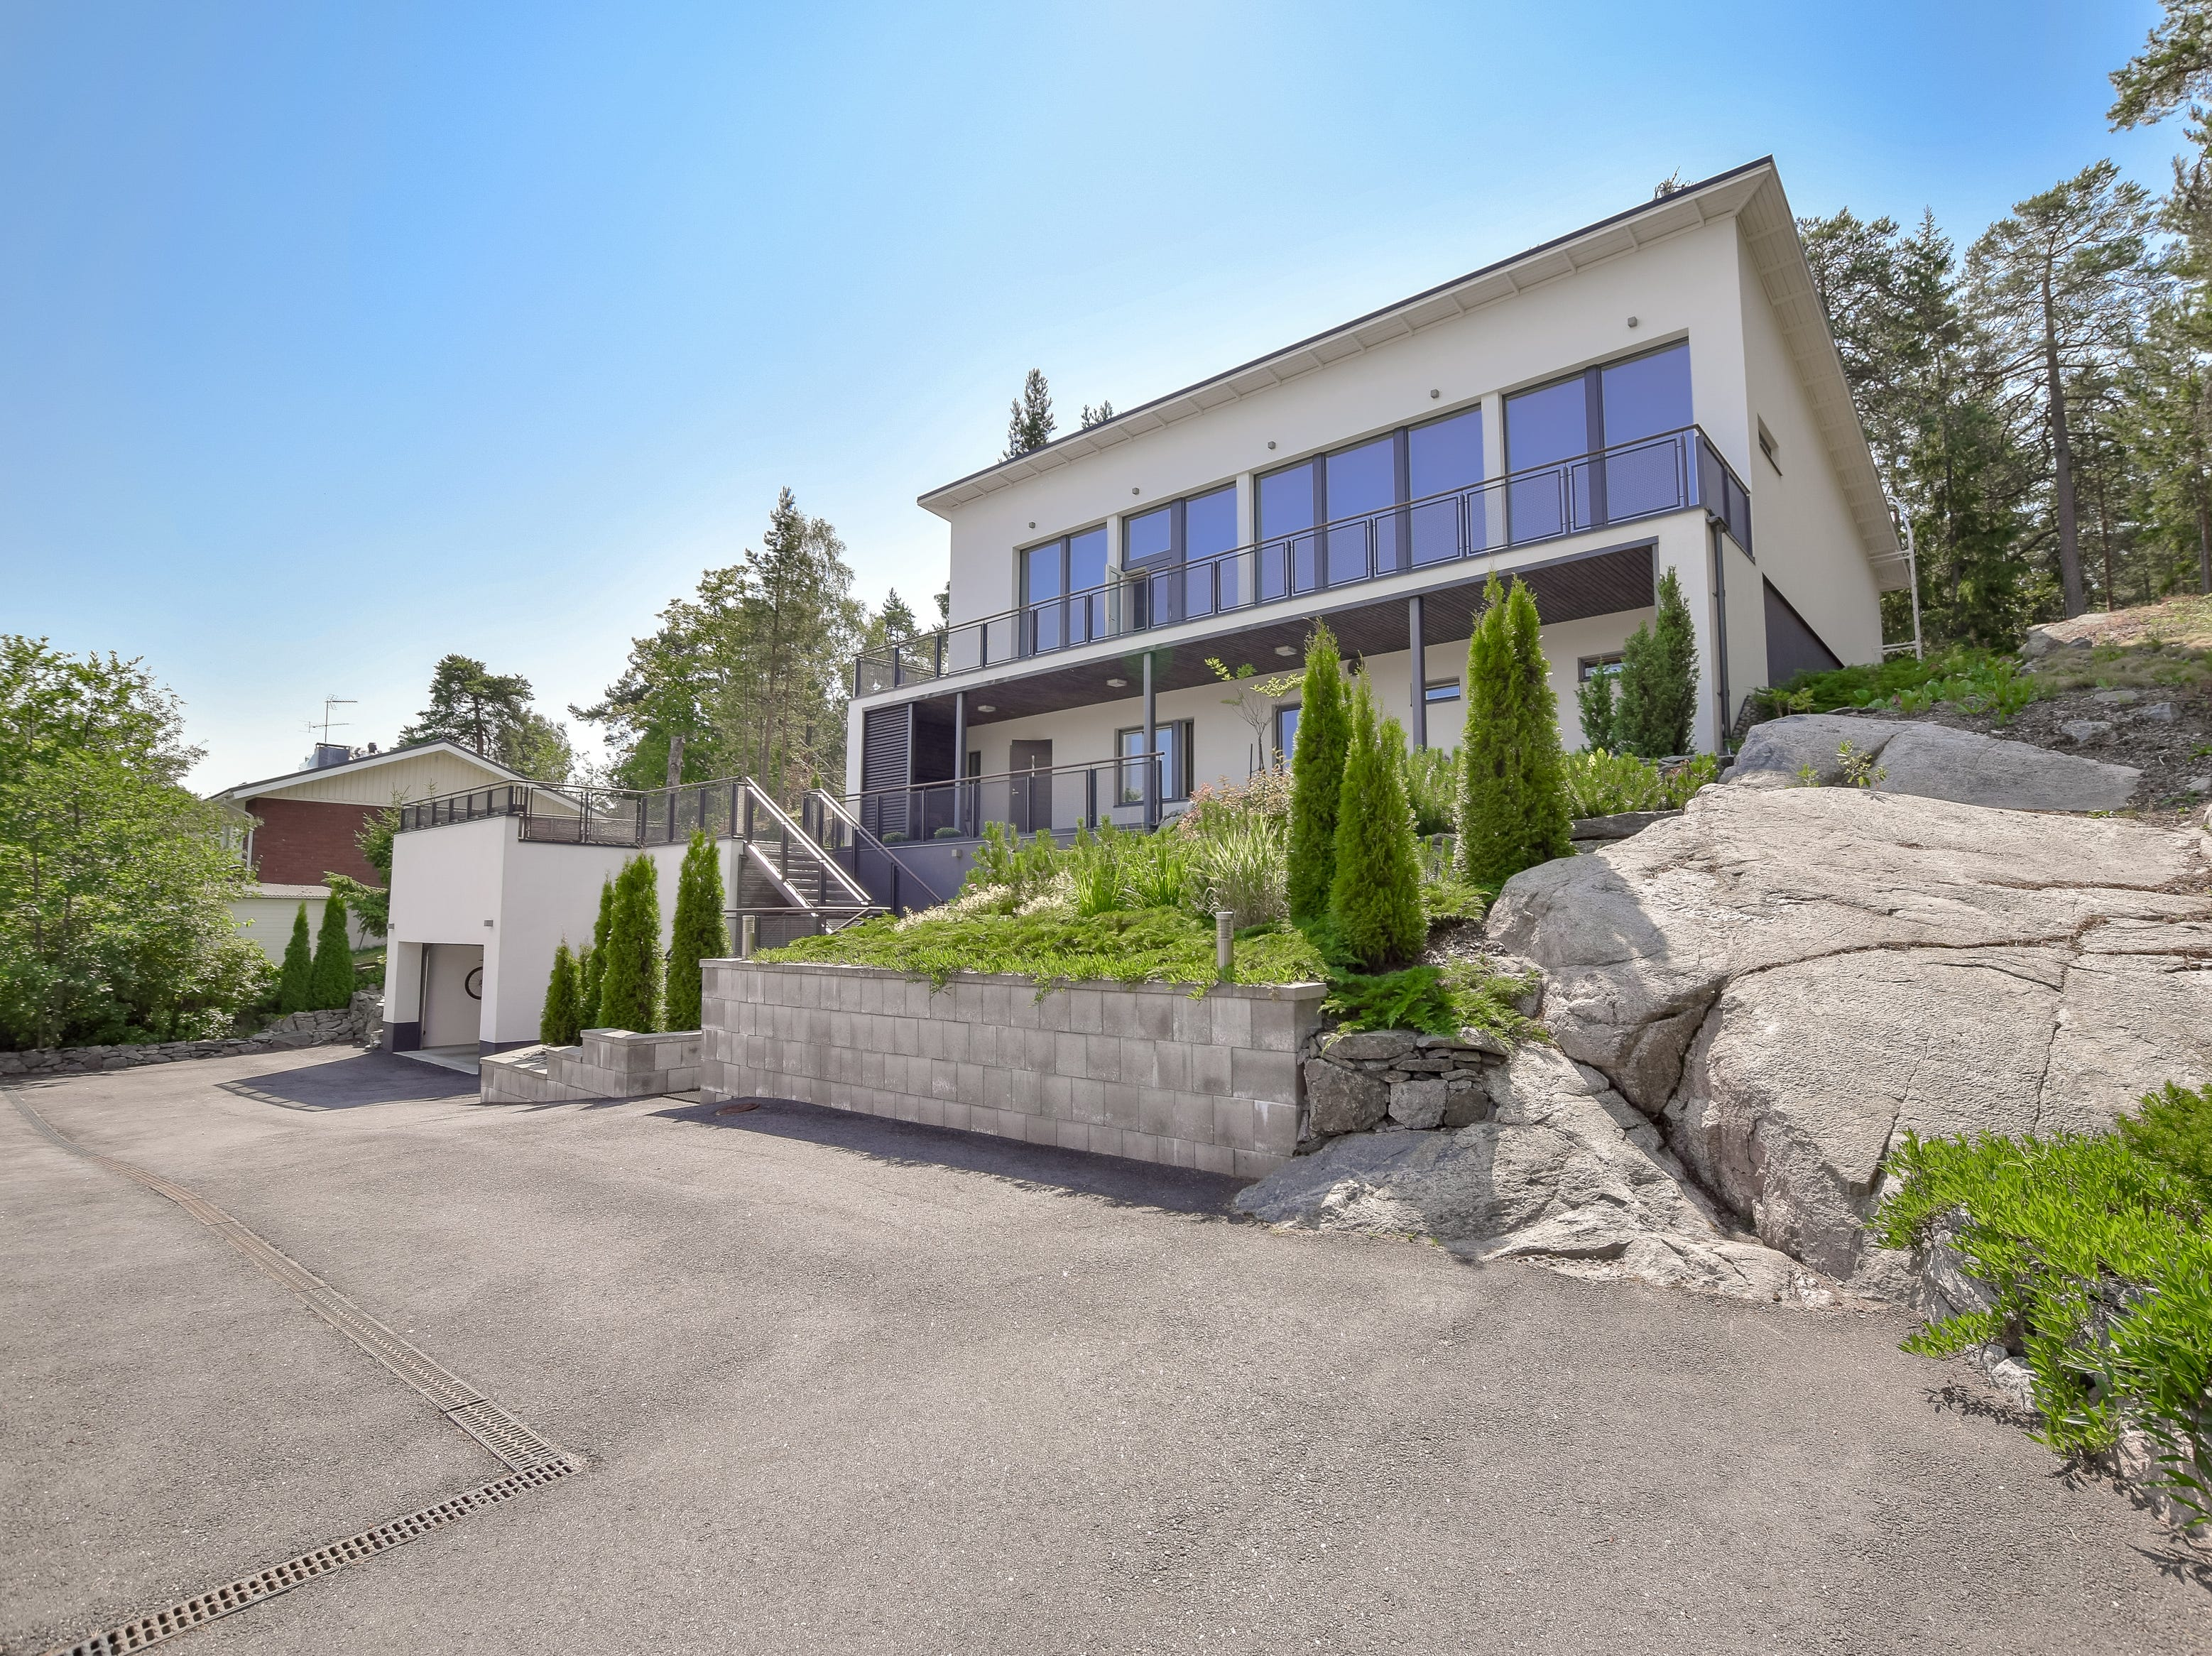 For $1.9 million, buyers can have this modern villa.